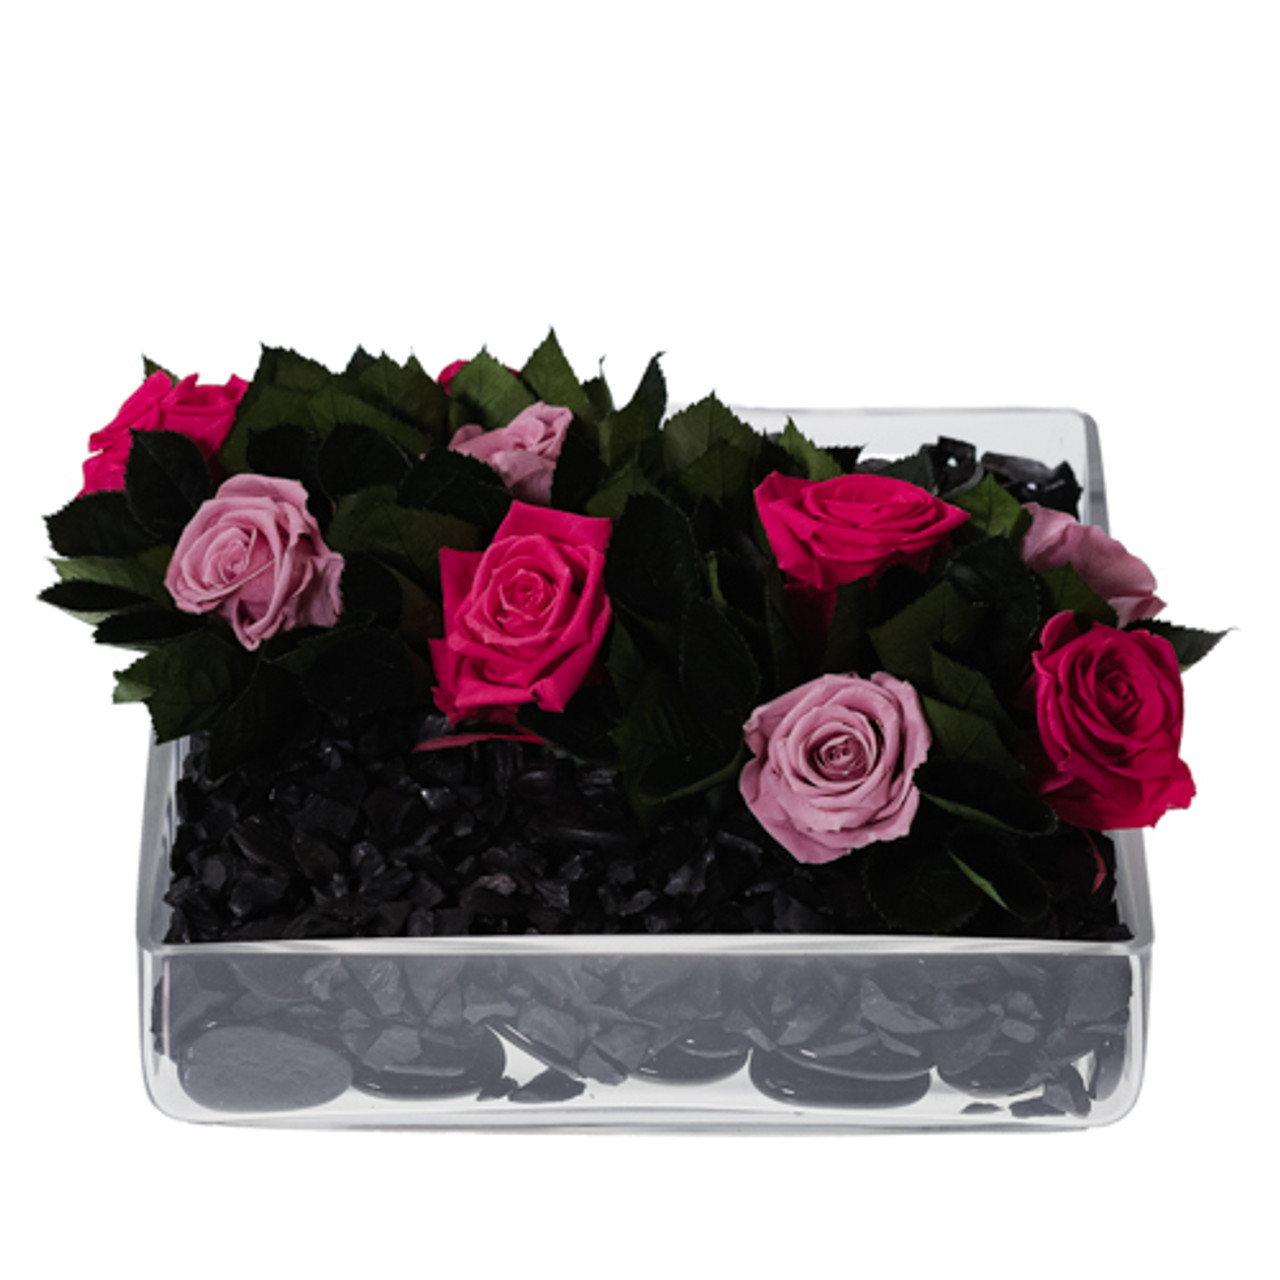 SOLD OUT - Rose Log